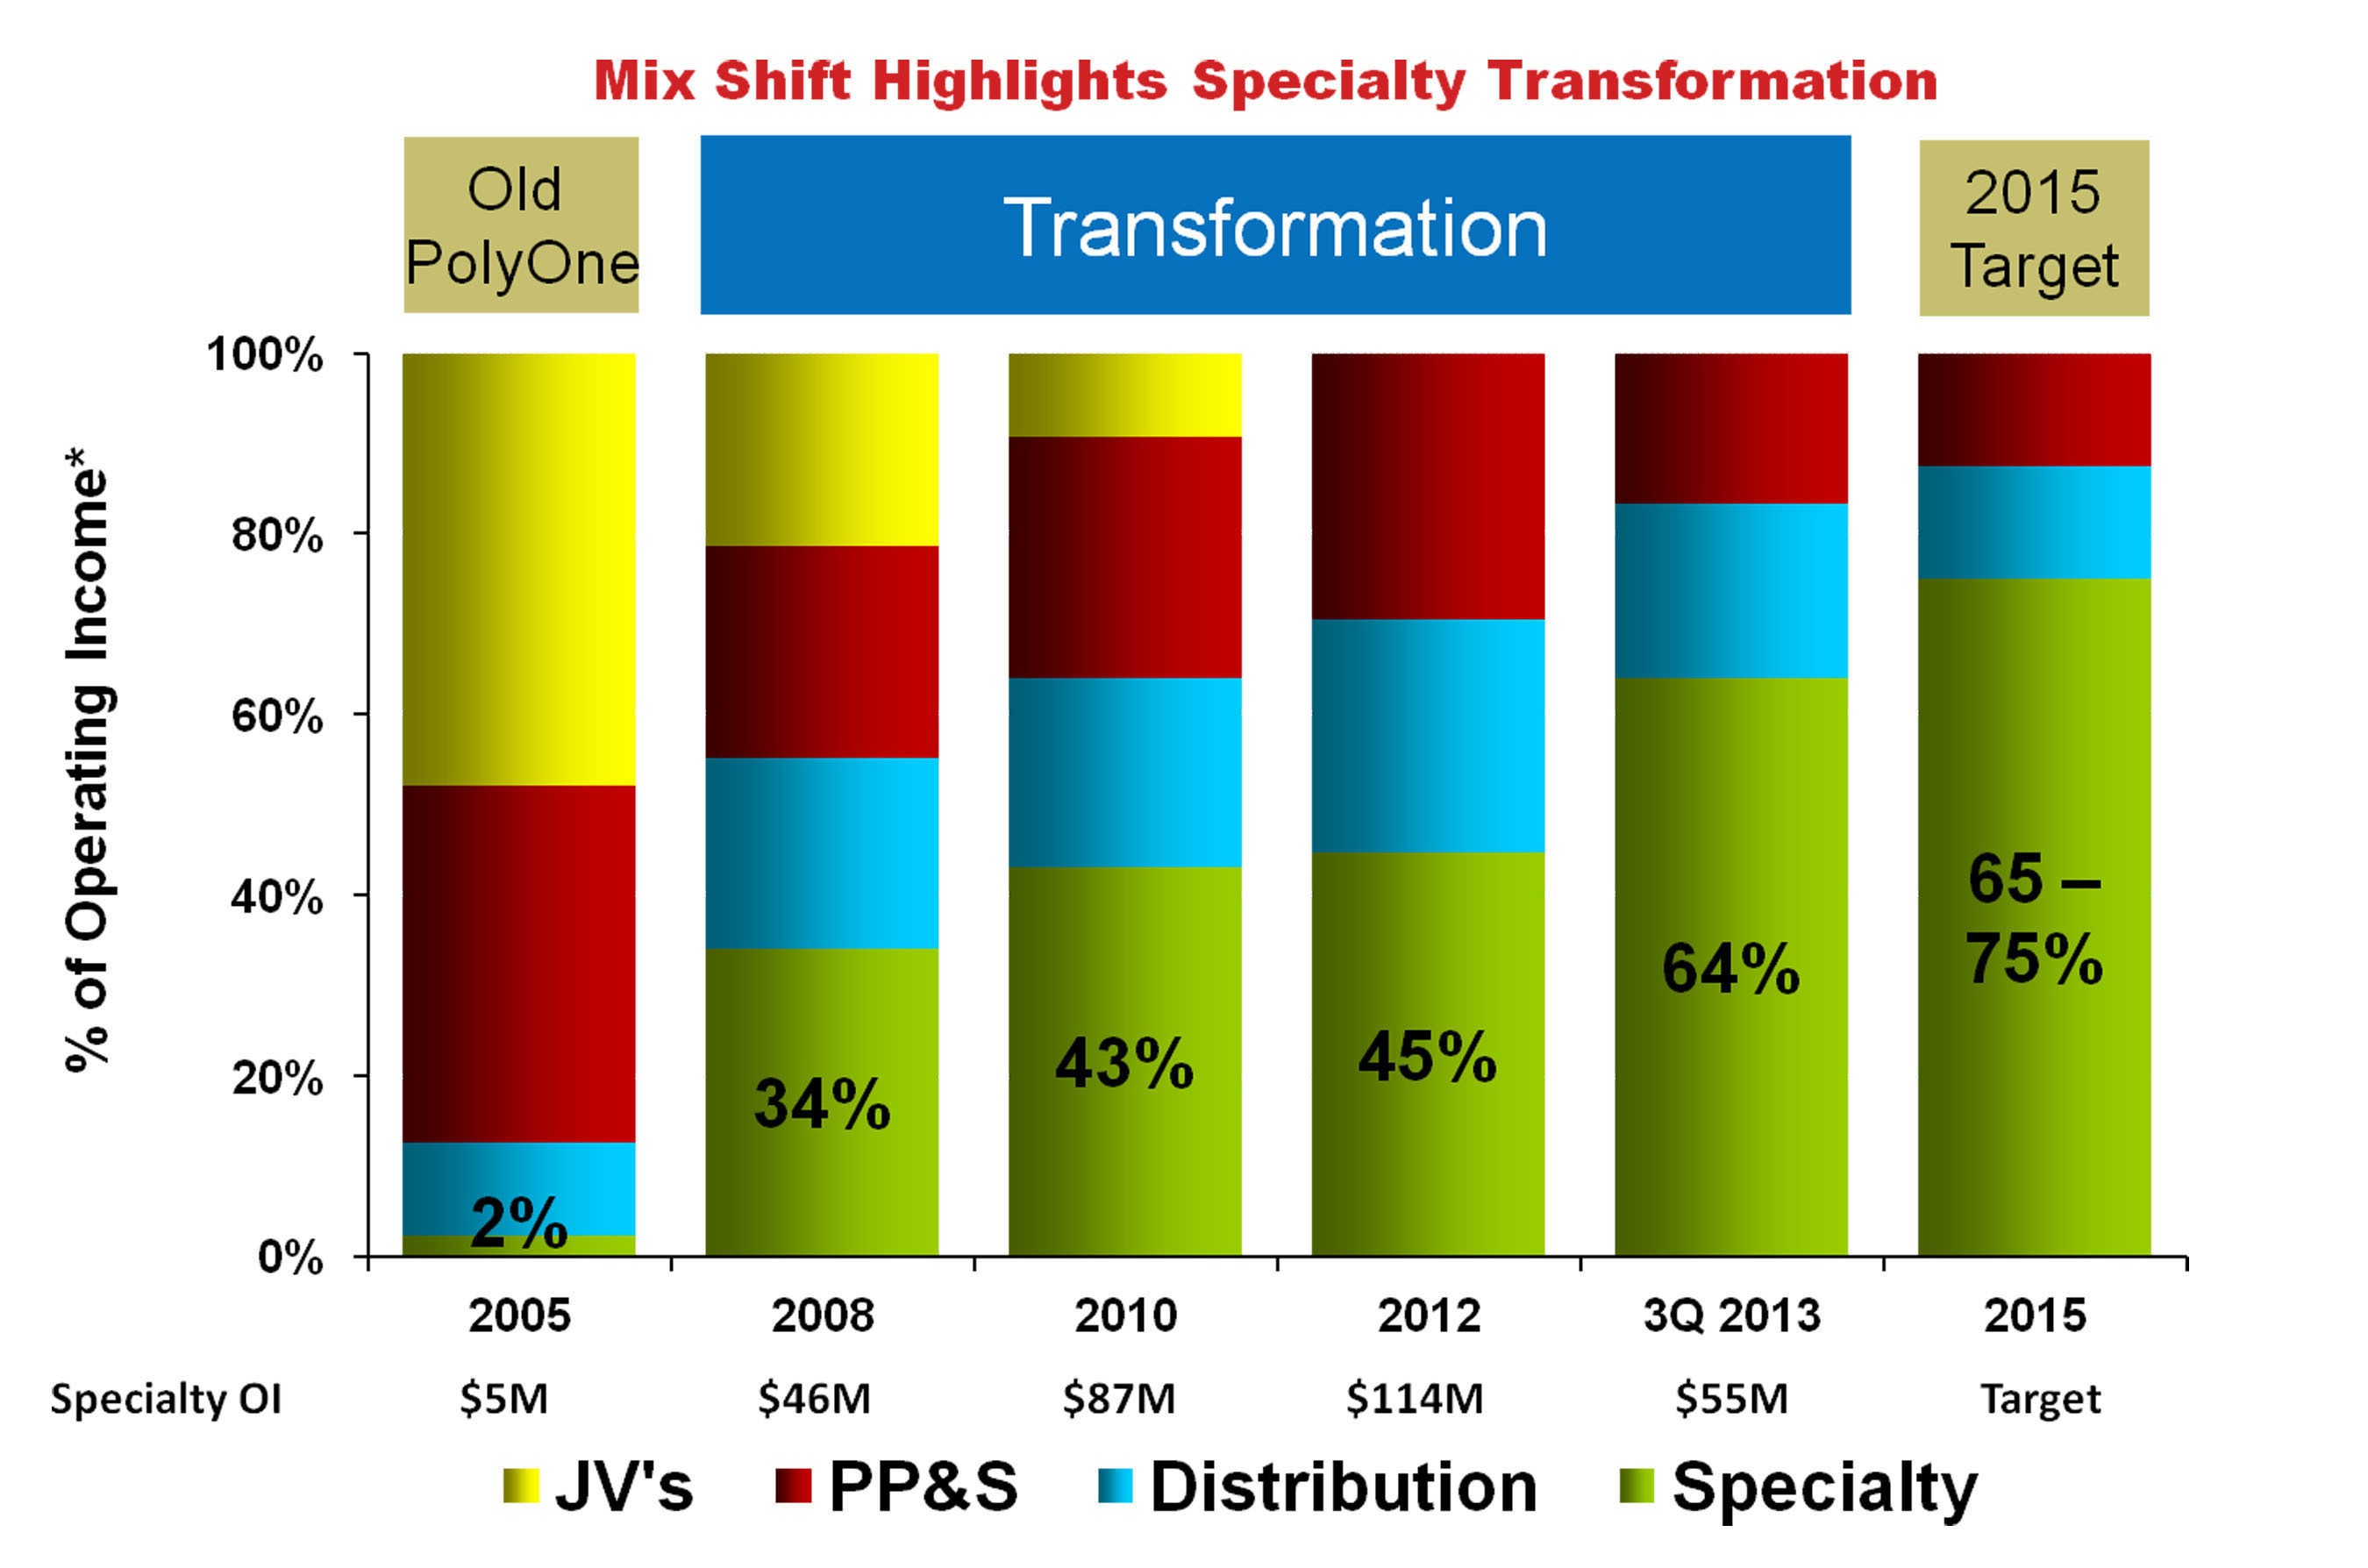 Mix Shift Highlights Specialty Transformation. (PRNewsFoto/PolyOne Corporation) (PRNewsFoto/POLYONE CORPORATION)